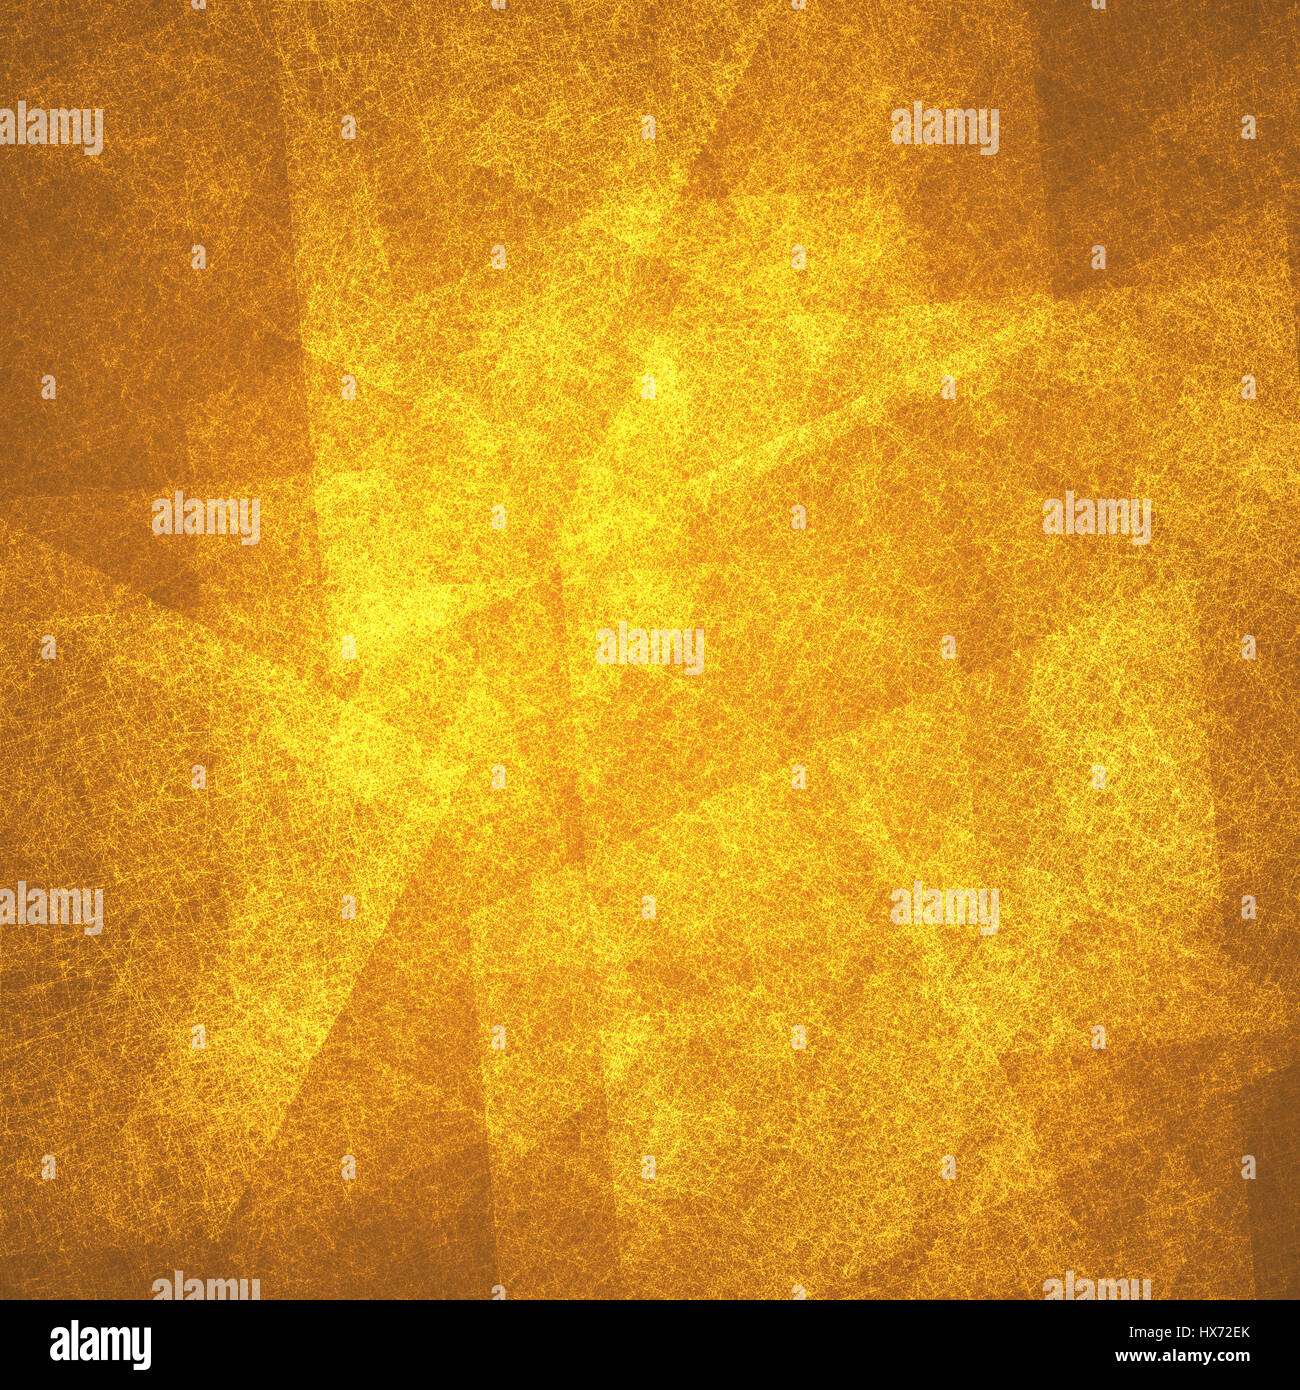 fancy gold background design with modern abstract layered